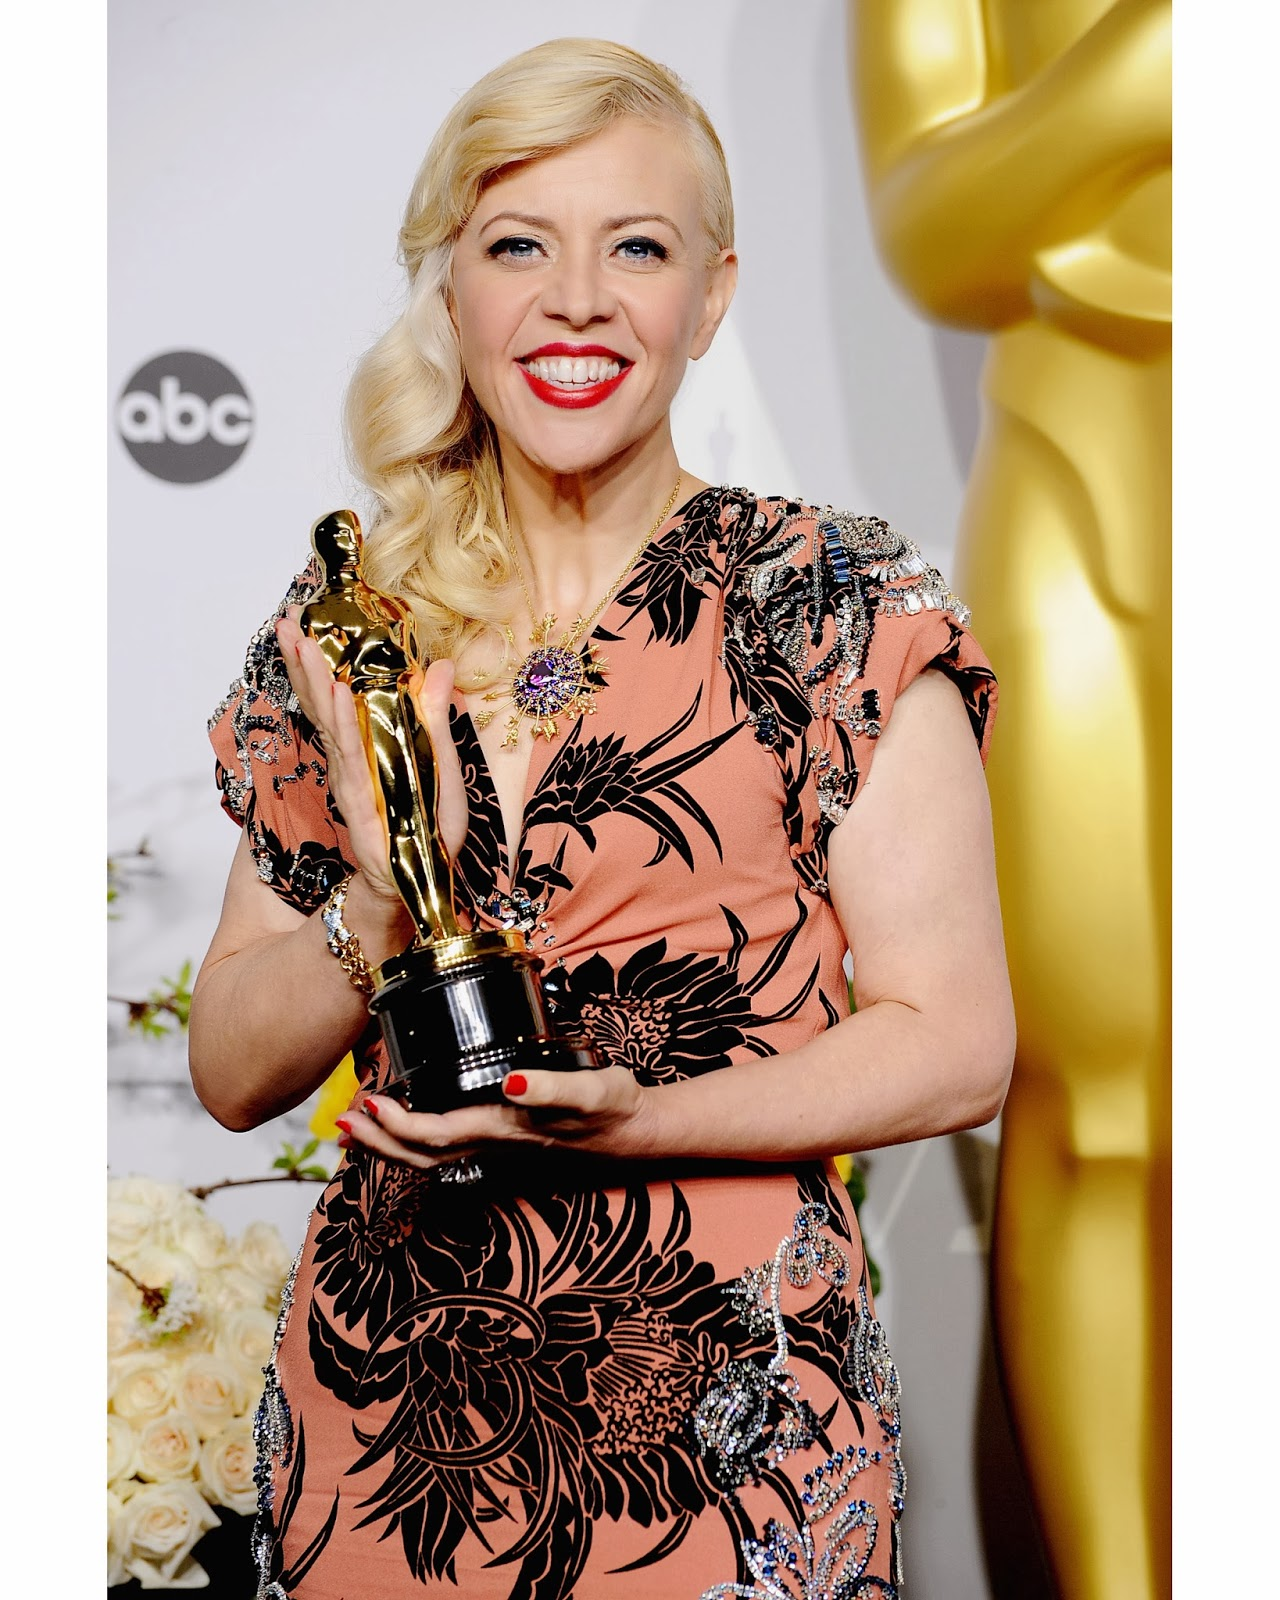 CATHERINE MARTIN AT THE 86TH ACADEMY AWARDS